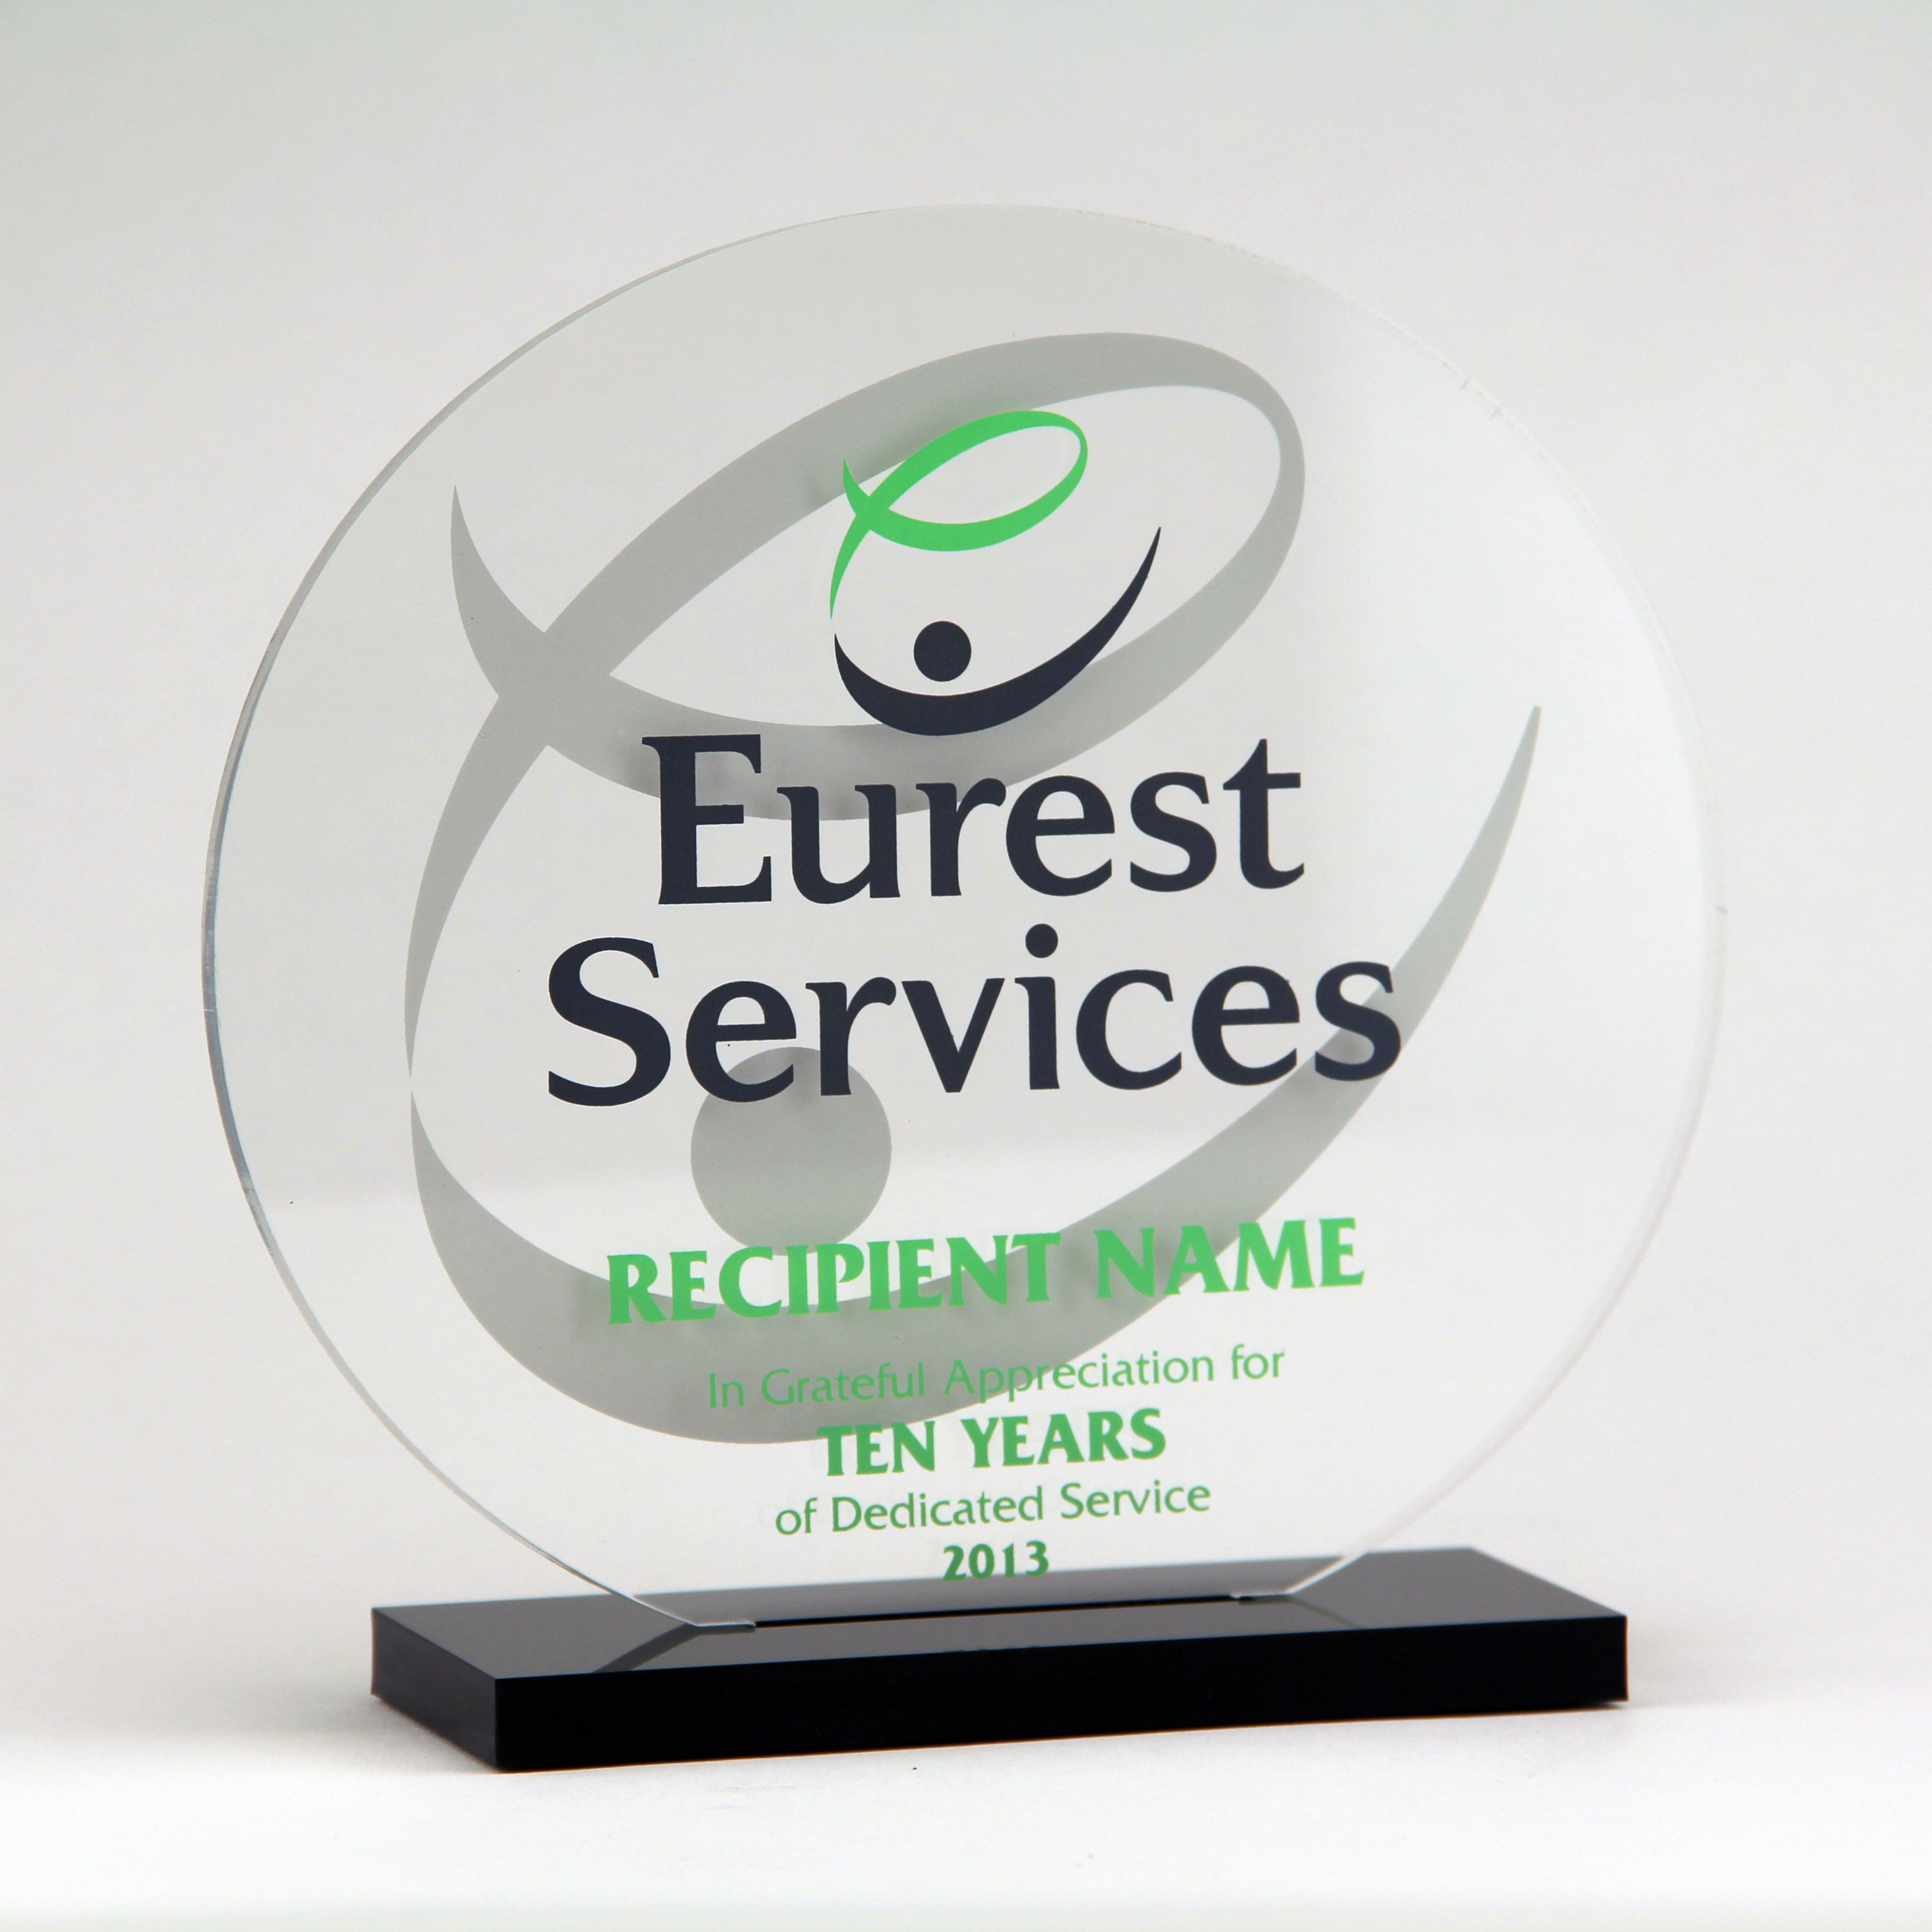 Eurest Services Years of Service Award   Bruce Fox ...